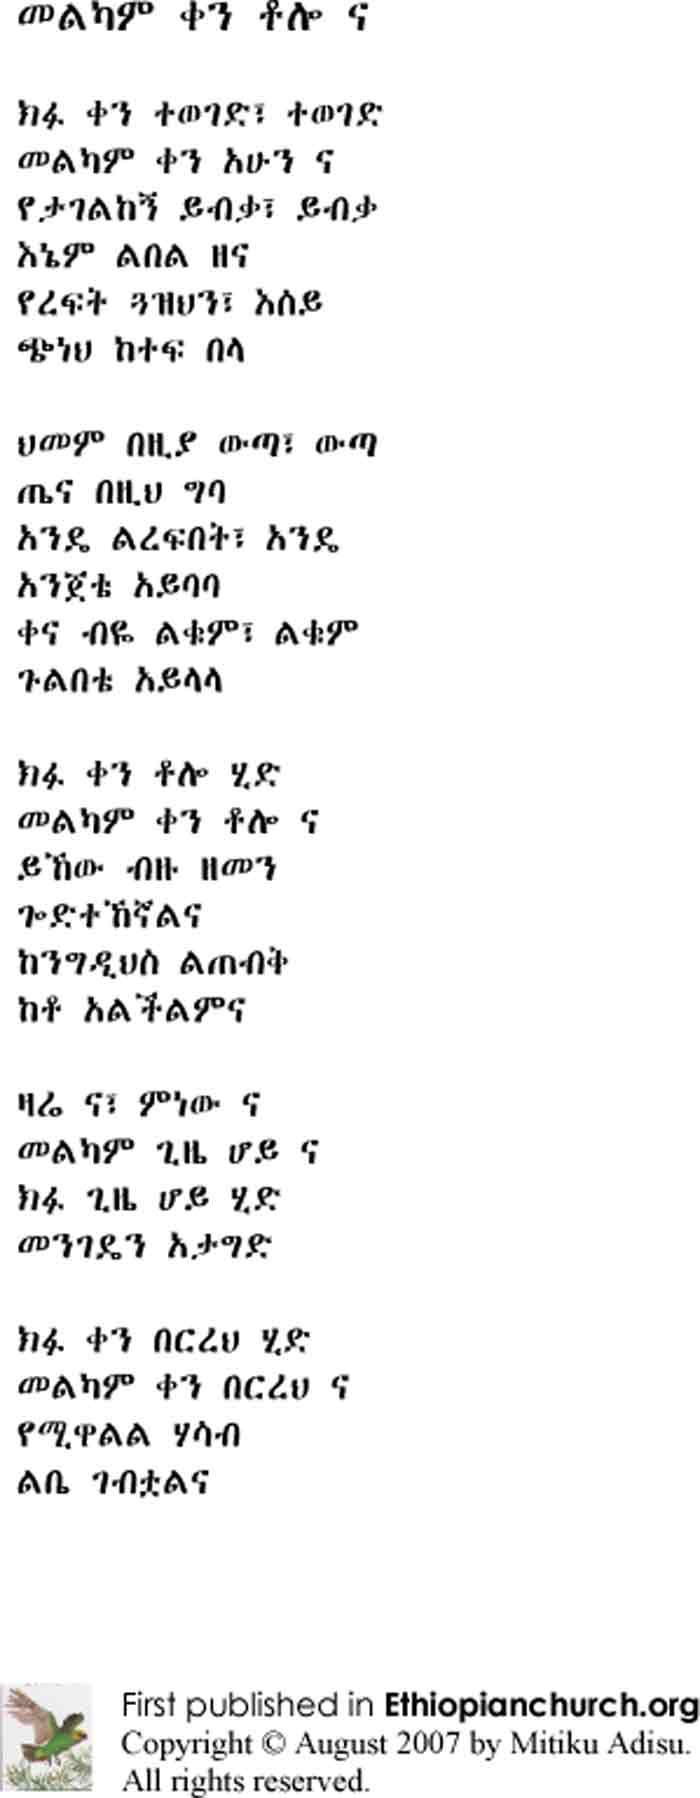 New Year Gregorian Calendar Ethiopia Ethiopia Celebrates New Year 7 Years Behind Gregorian Ethiopia An Ethiopian Journal Page 12